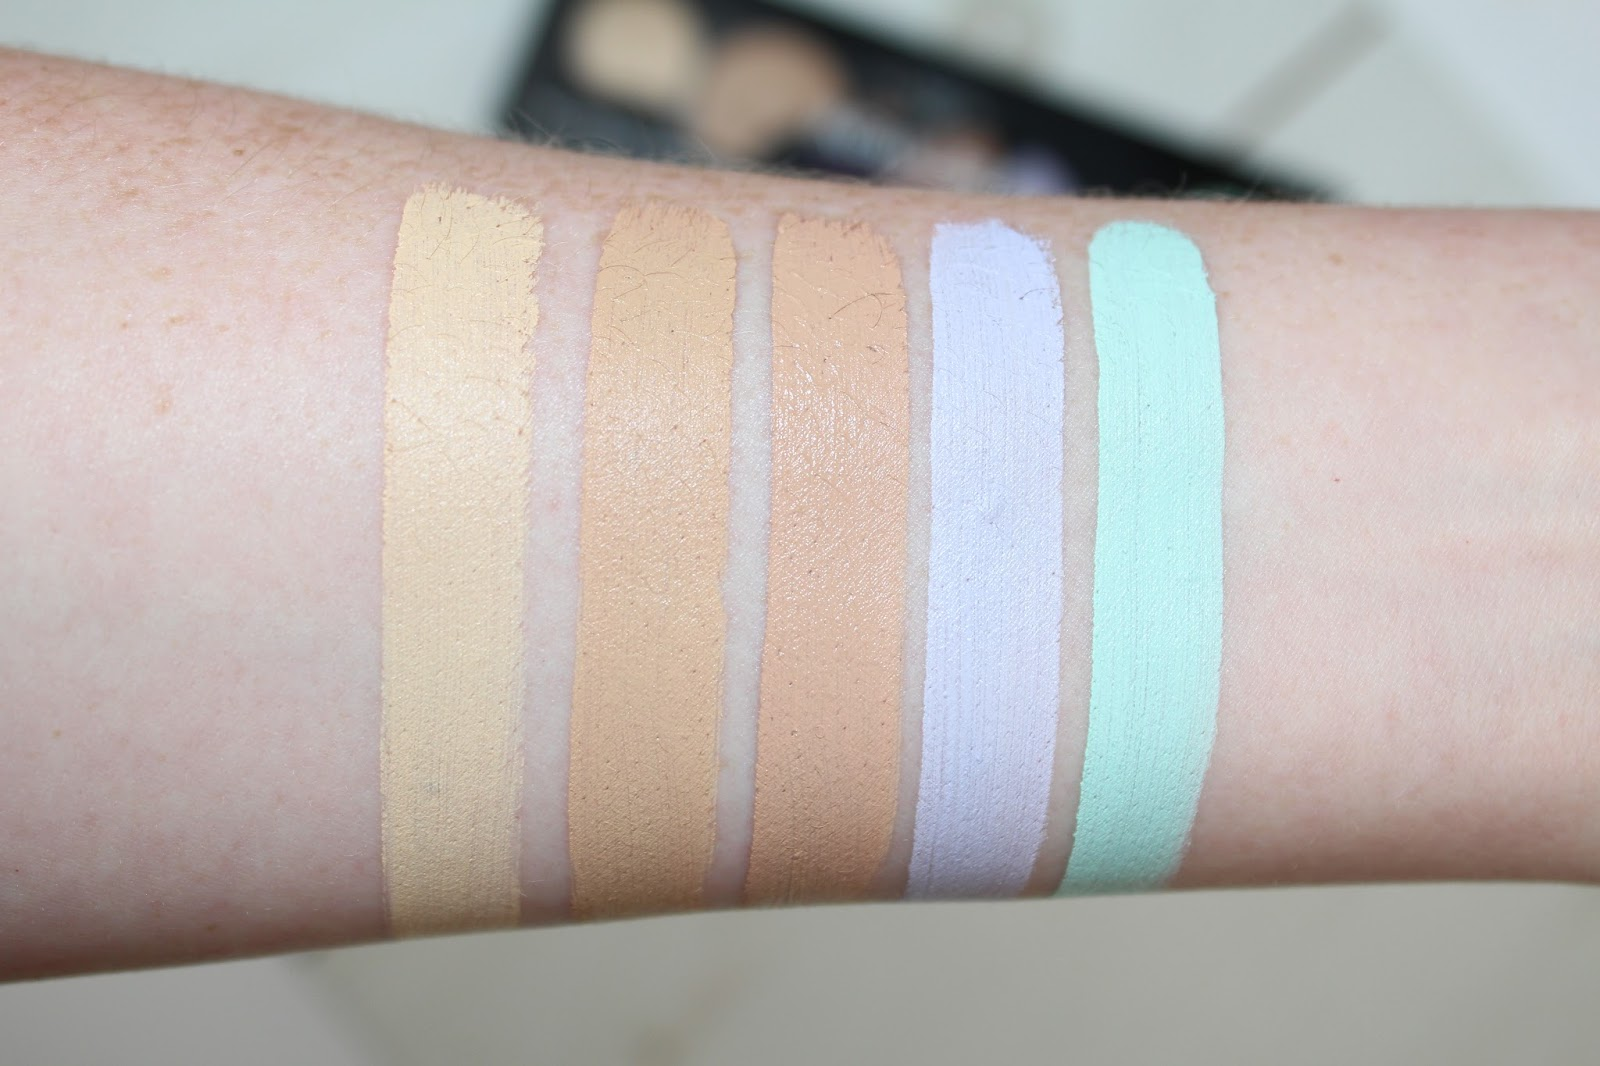 Total Cover Color Correcting Kit by L'Oreal #22